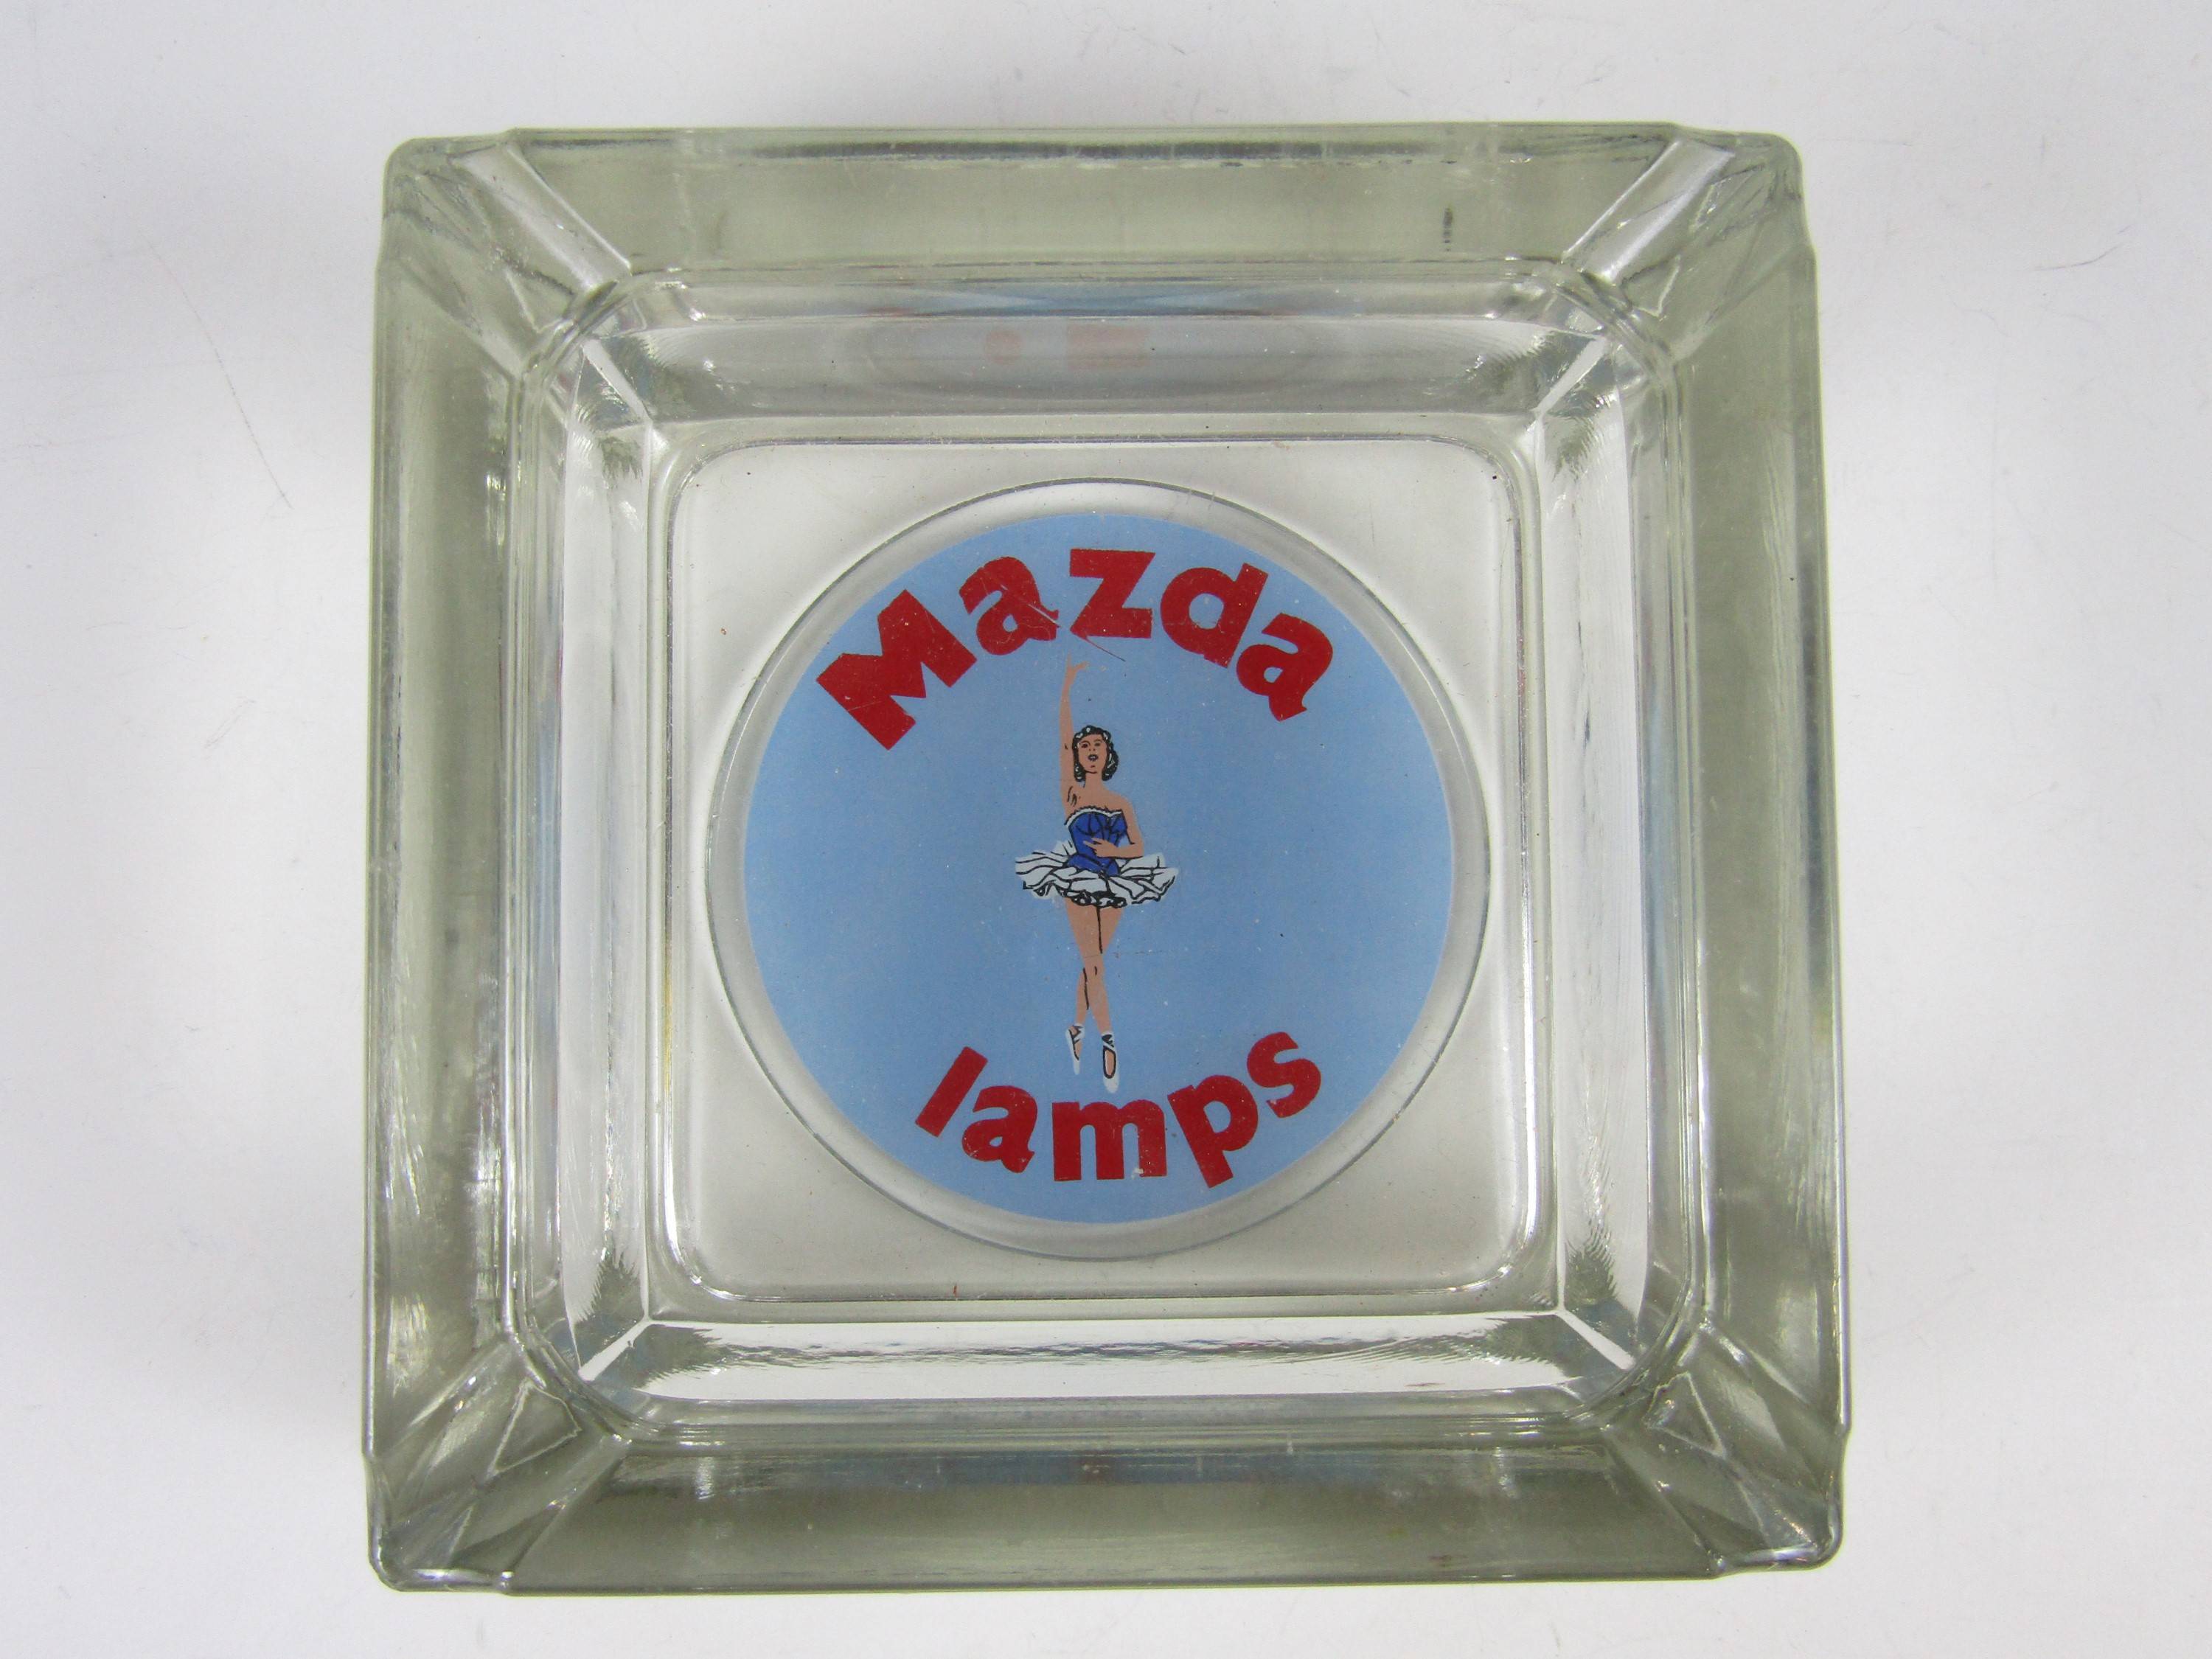 Lot 52 - A vintage Mazda Lamps advertising glass ashtray